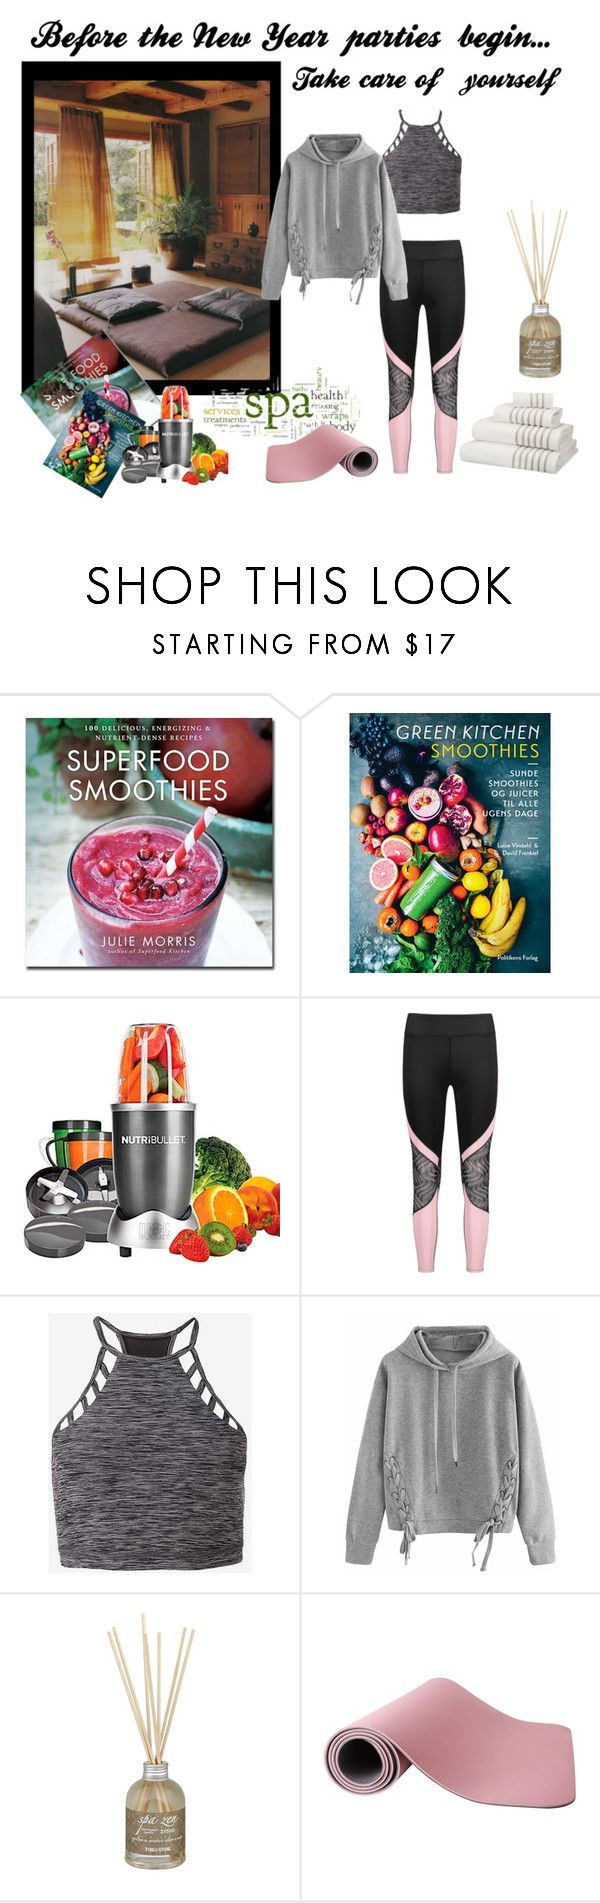 """Just Starting Out"" by jjsunnygirl on Polyvore featuring Williams-Sonoma, NutriBullet, Express, WithChic and John Lewis"